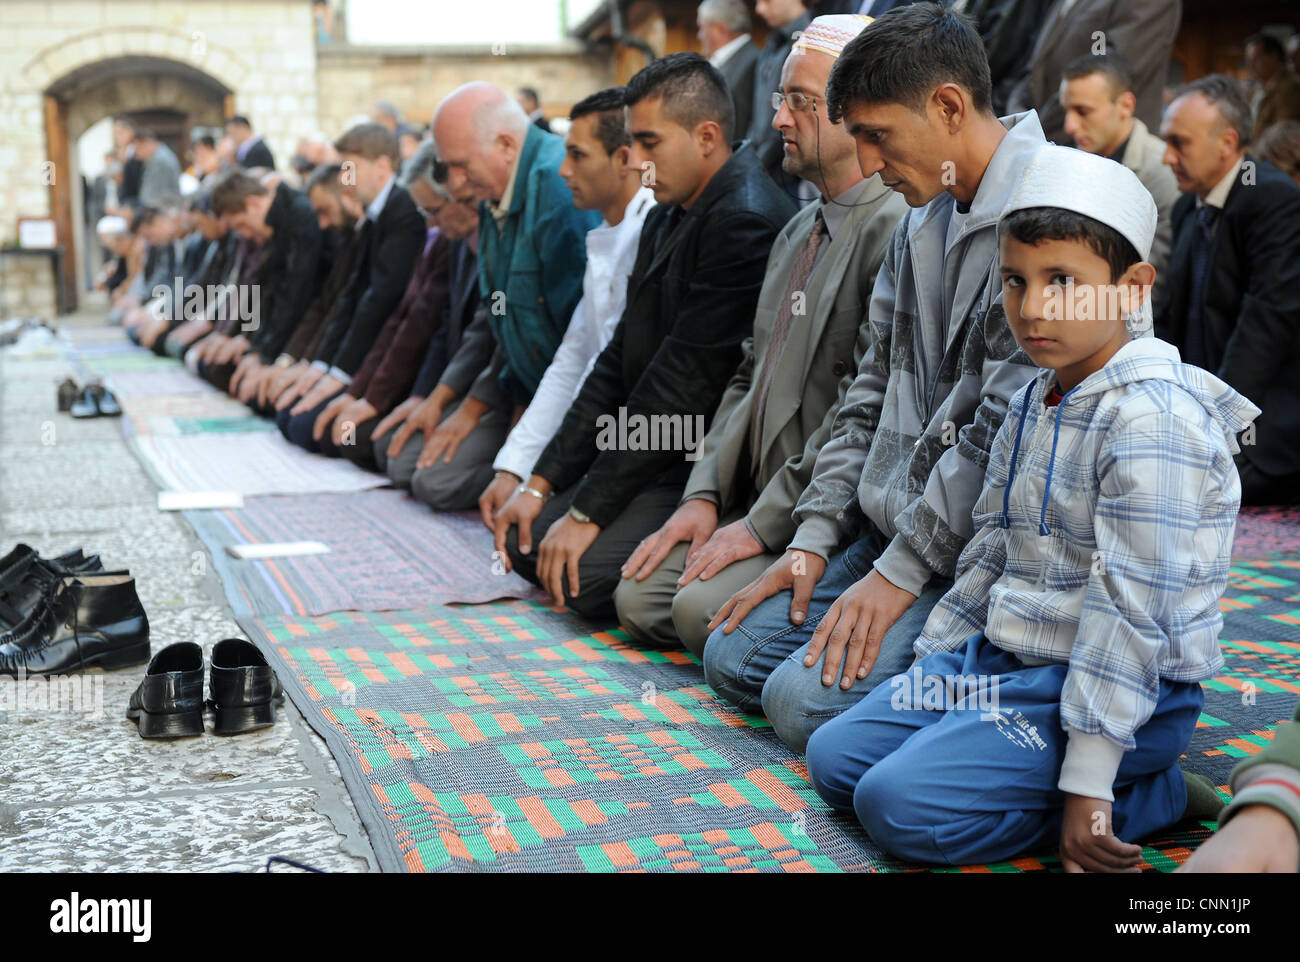 Bosnian Muslims pray in Sarajevo, celebrating the biggest Islamic religious holiday Eid AL -Adha. - Stock Image